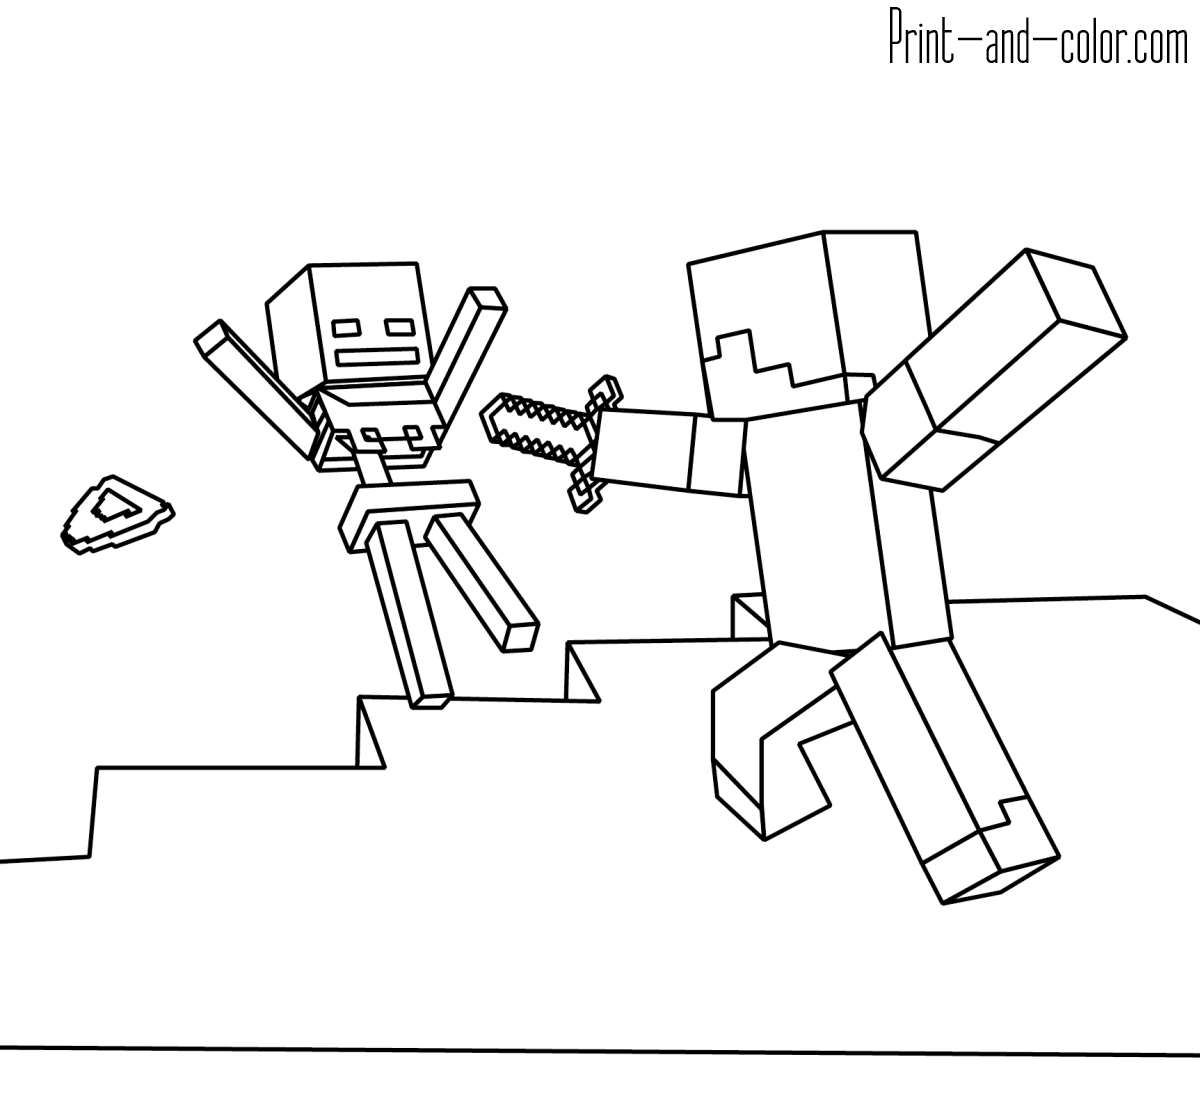 minecraft pictures to print and color minecraft coloring pages print and colorcom and pictures print to minecraft color